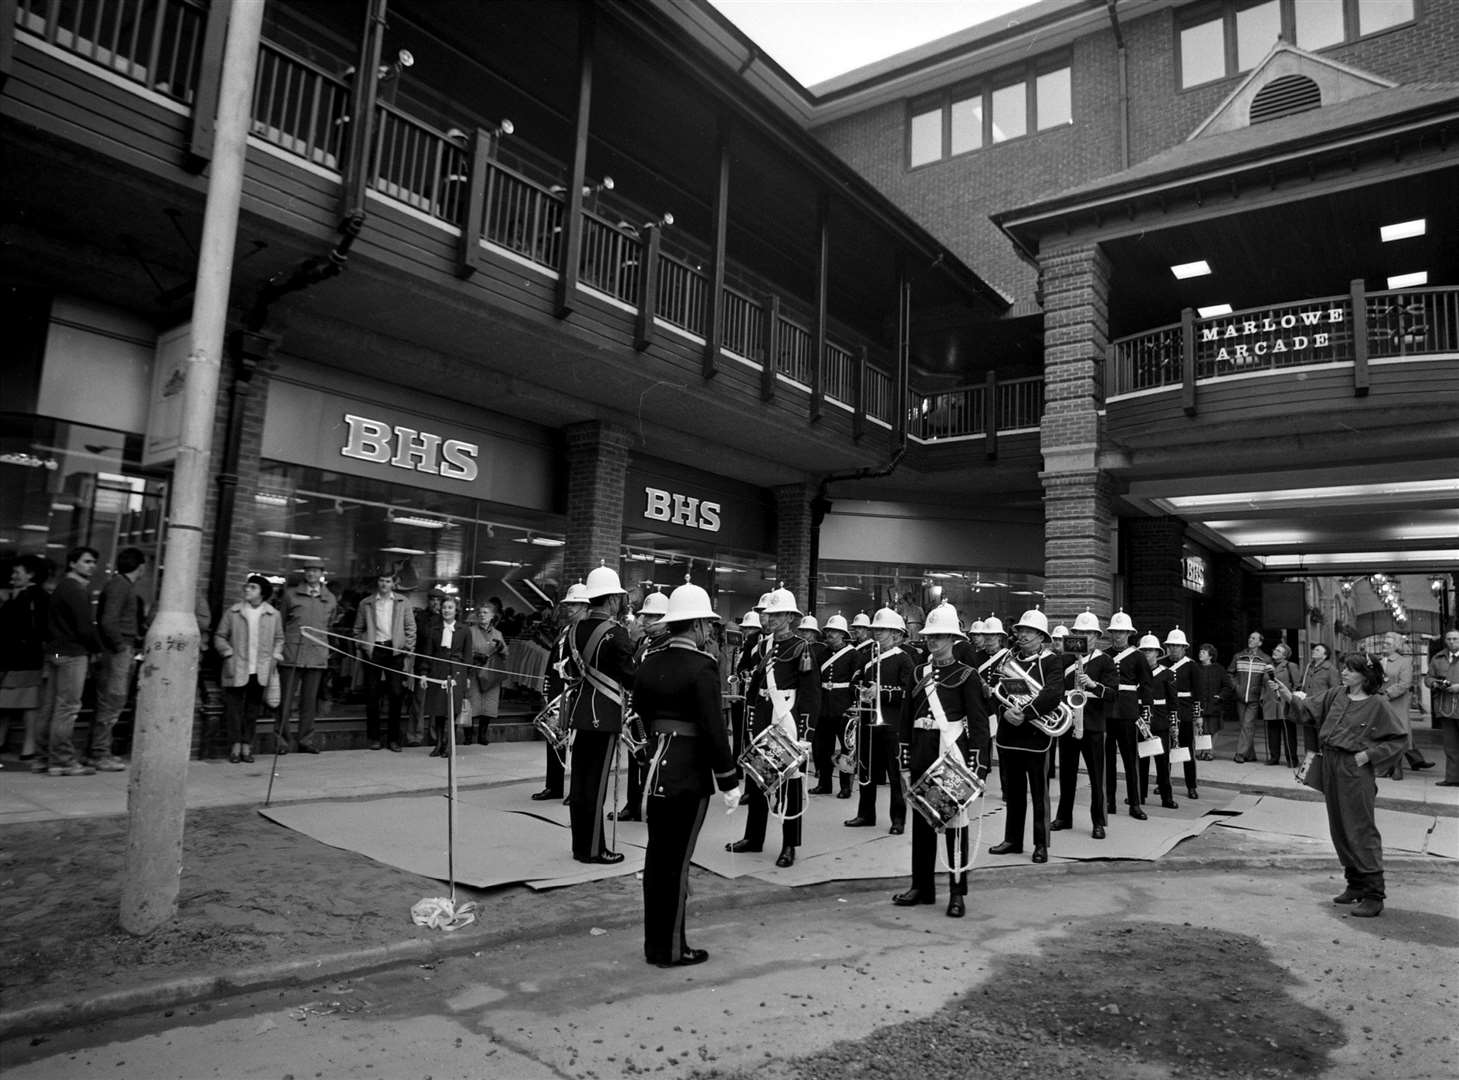 The Royal Marines band at the Marlowe Arcade opening in 1985. BHS is now occupied by Primark